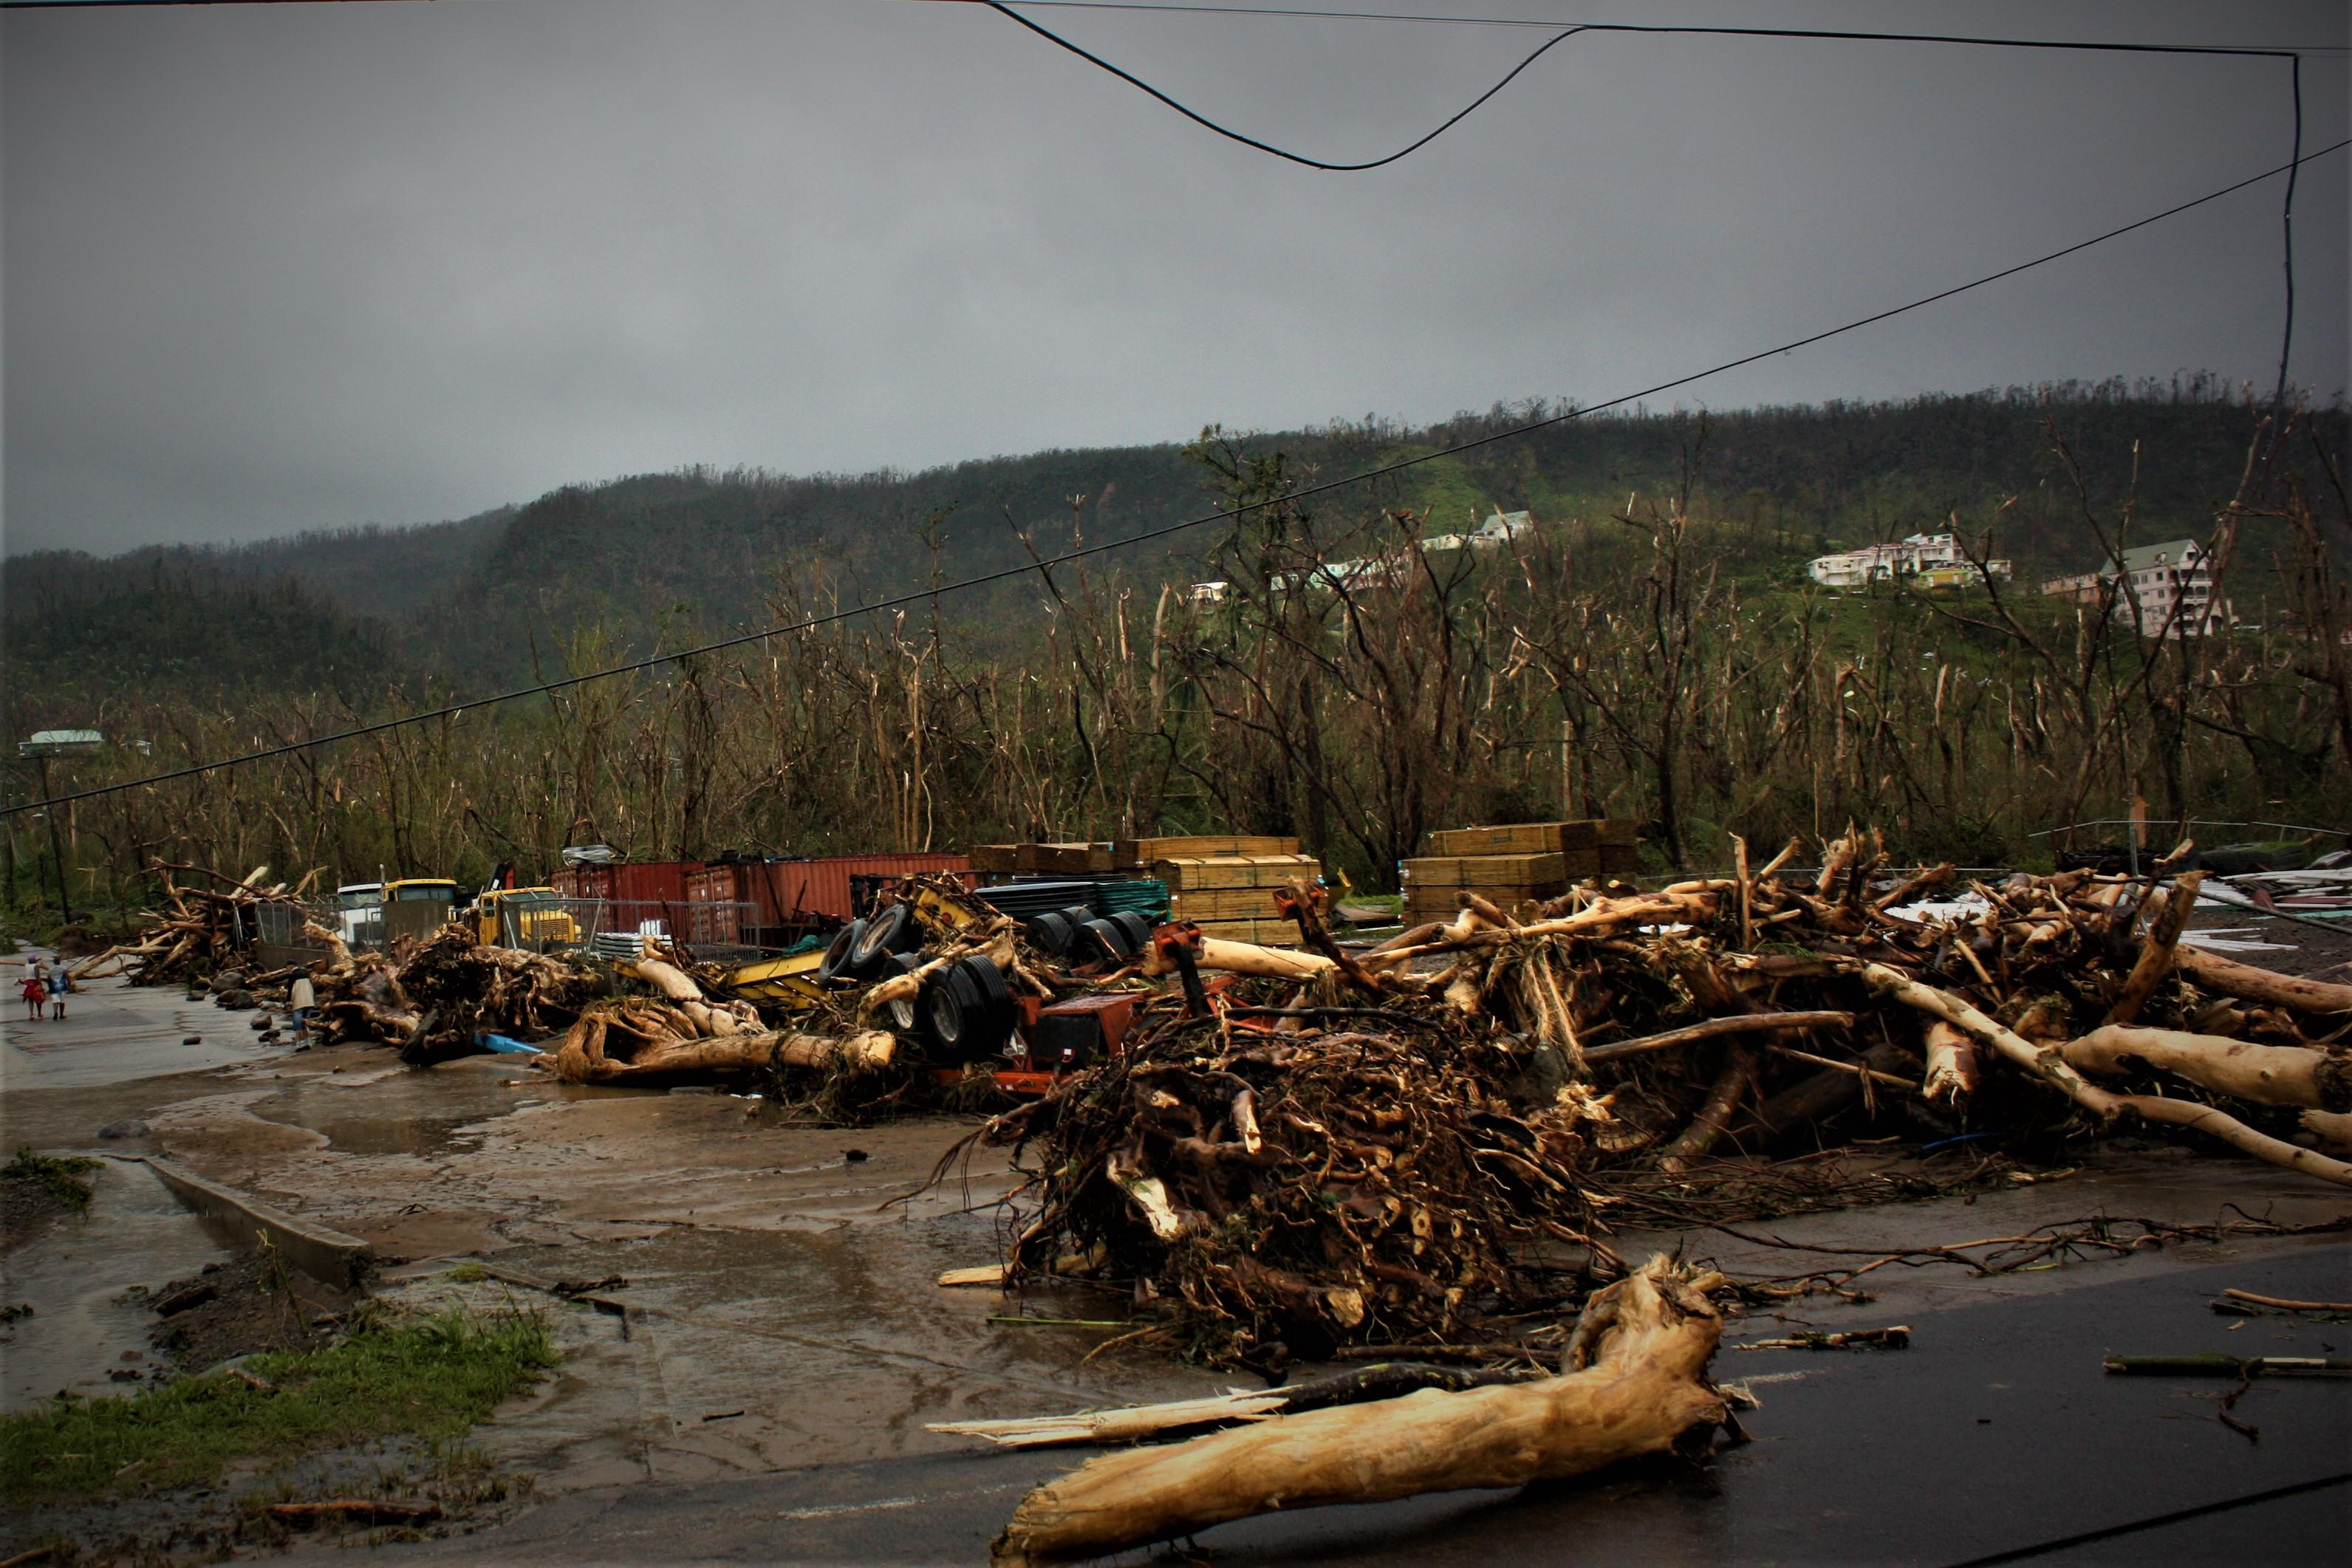 Photos show the destruction n Dominica caused by Hurricane Maria. (Courtesy of Elisha Griffin)